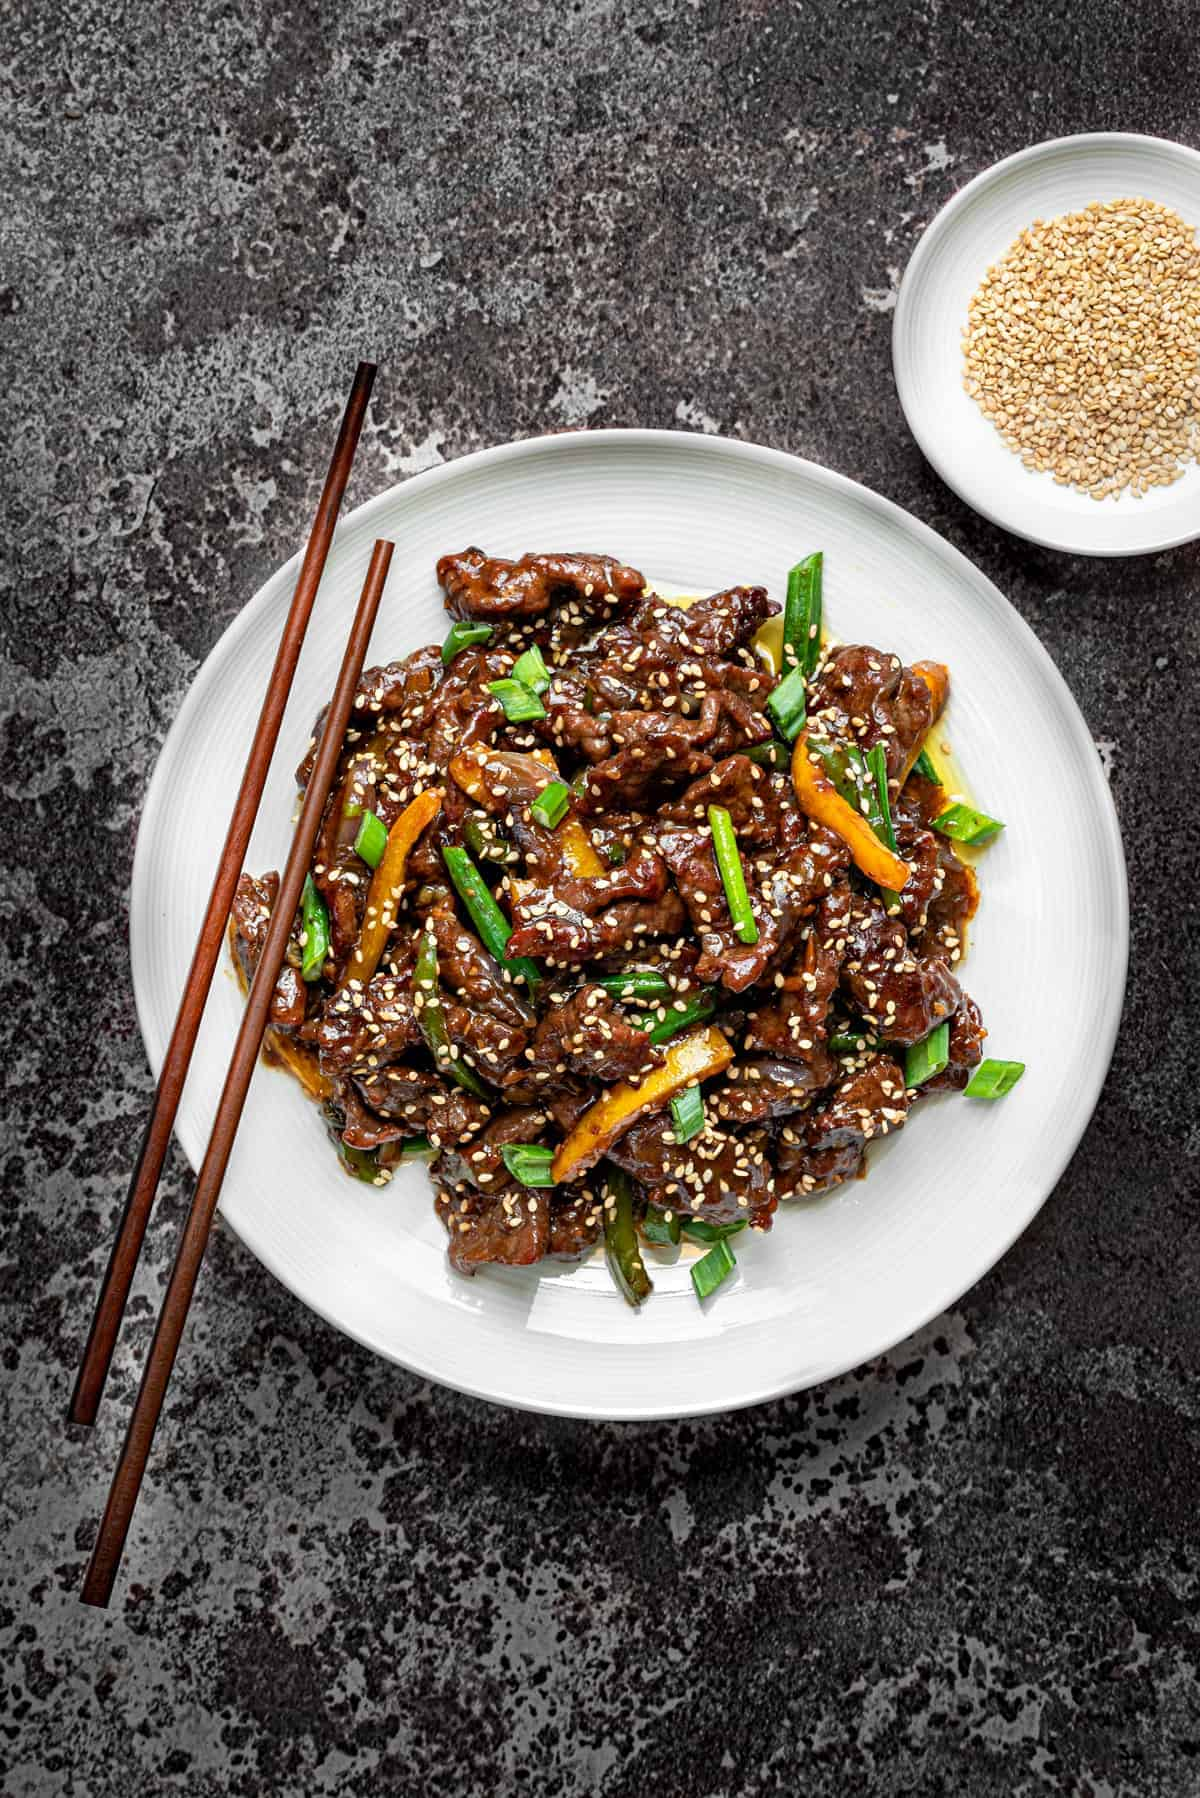 Chinese Beef stir fry in a white bowl with wooden chopsticks on a grey background